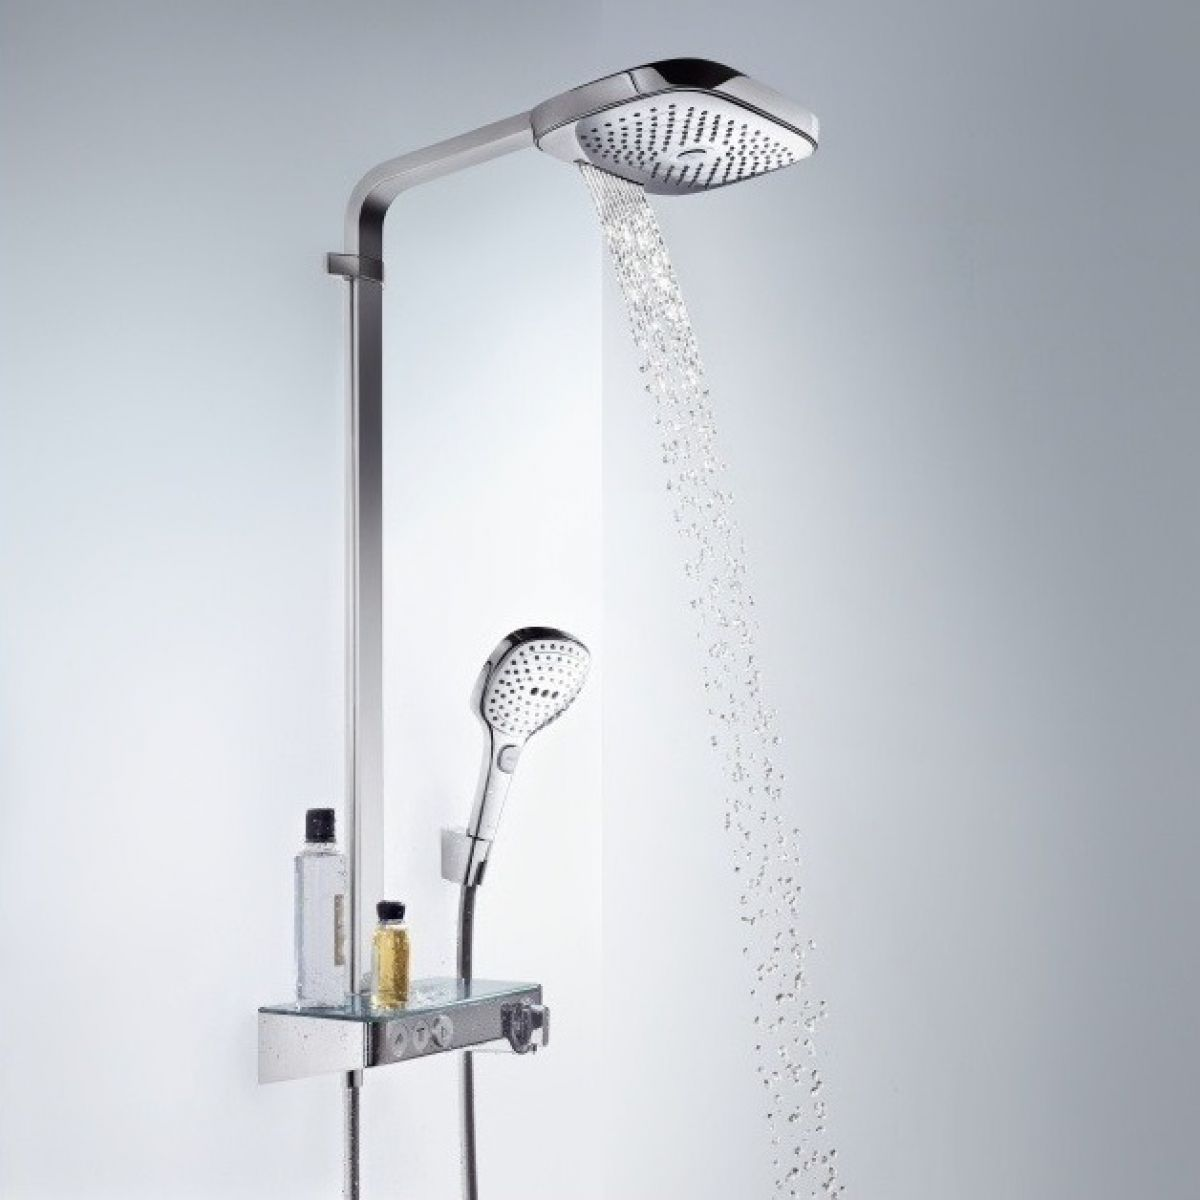 hansgrohe raindance select e 300 3 jet st showerpipe. Black Bedroom Furniture Sets. Home Design Ideas